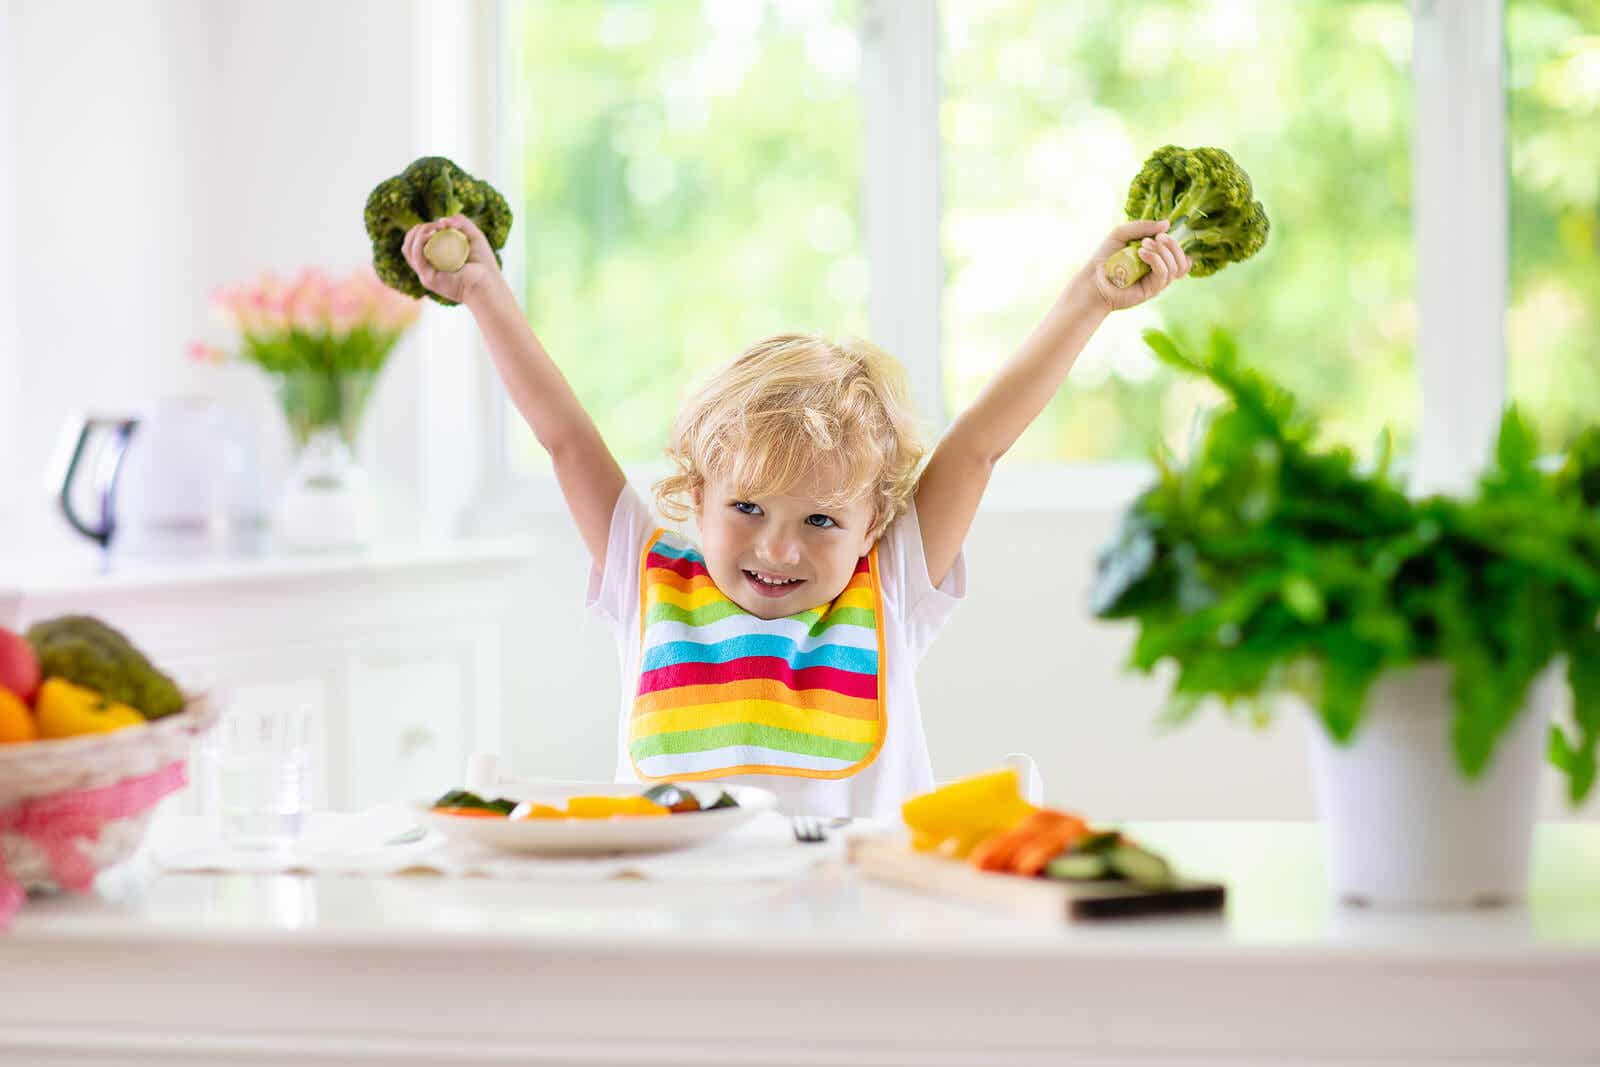 Happy child because he's going to eat fruits and vegetables.